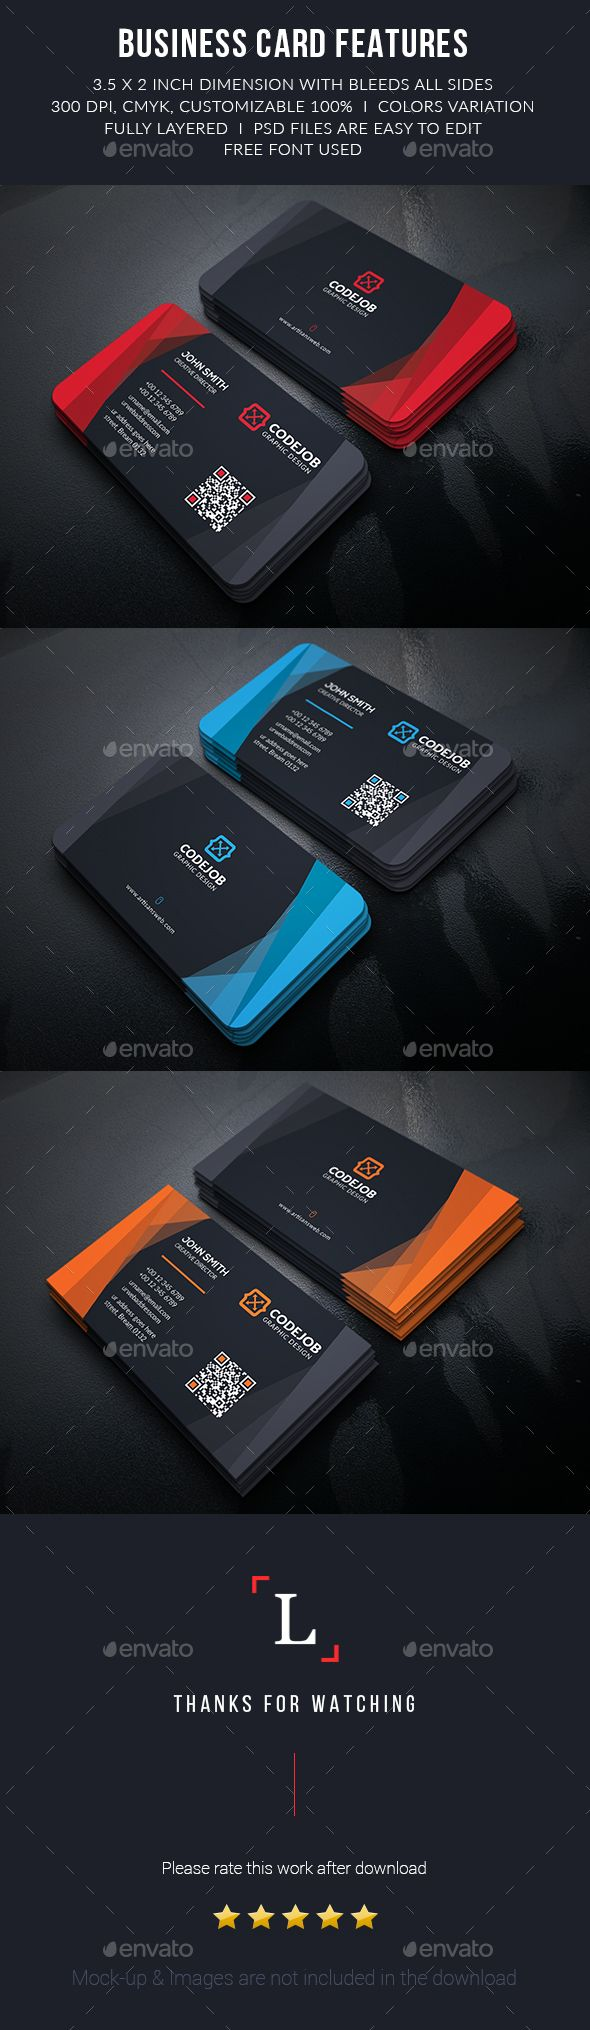 Abstract Corporate Business Cards Template #design Download: http://graphicriver.net/item/abstract-corporate-business-cards/13577103?ref=ksioks